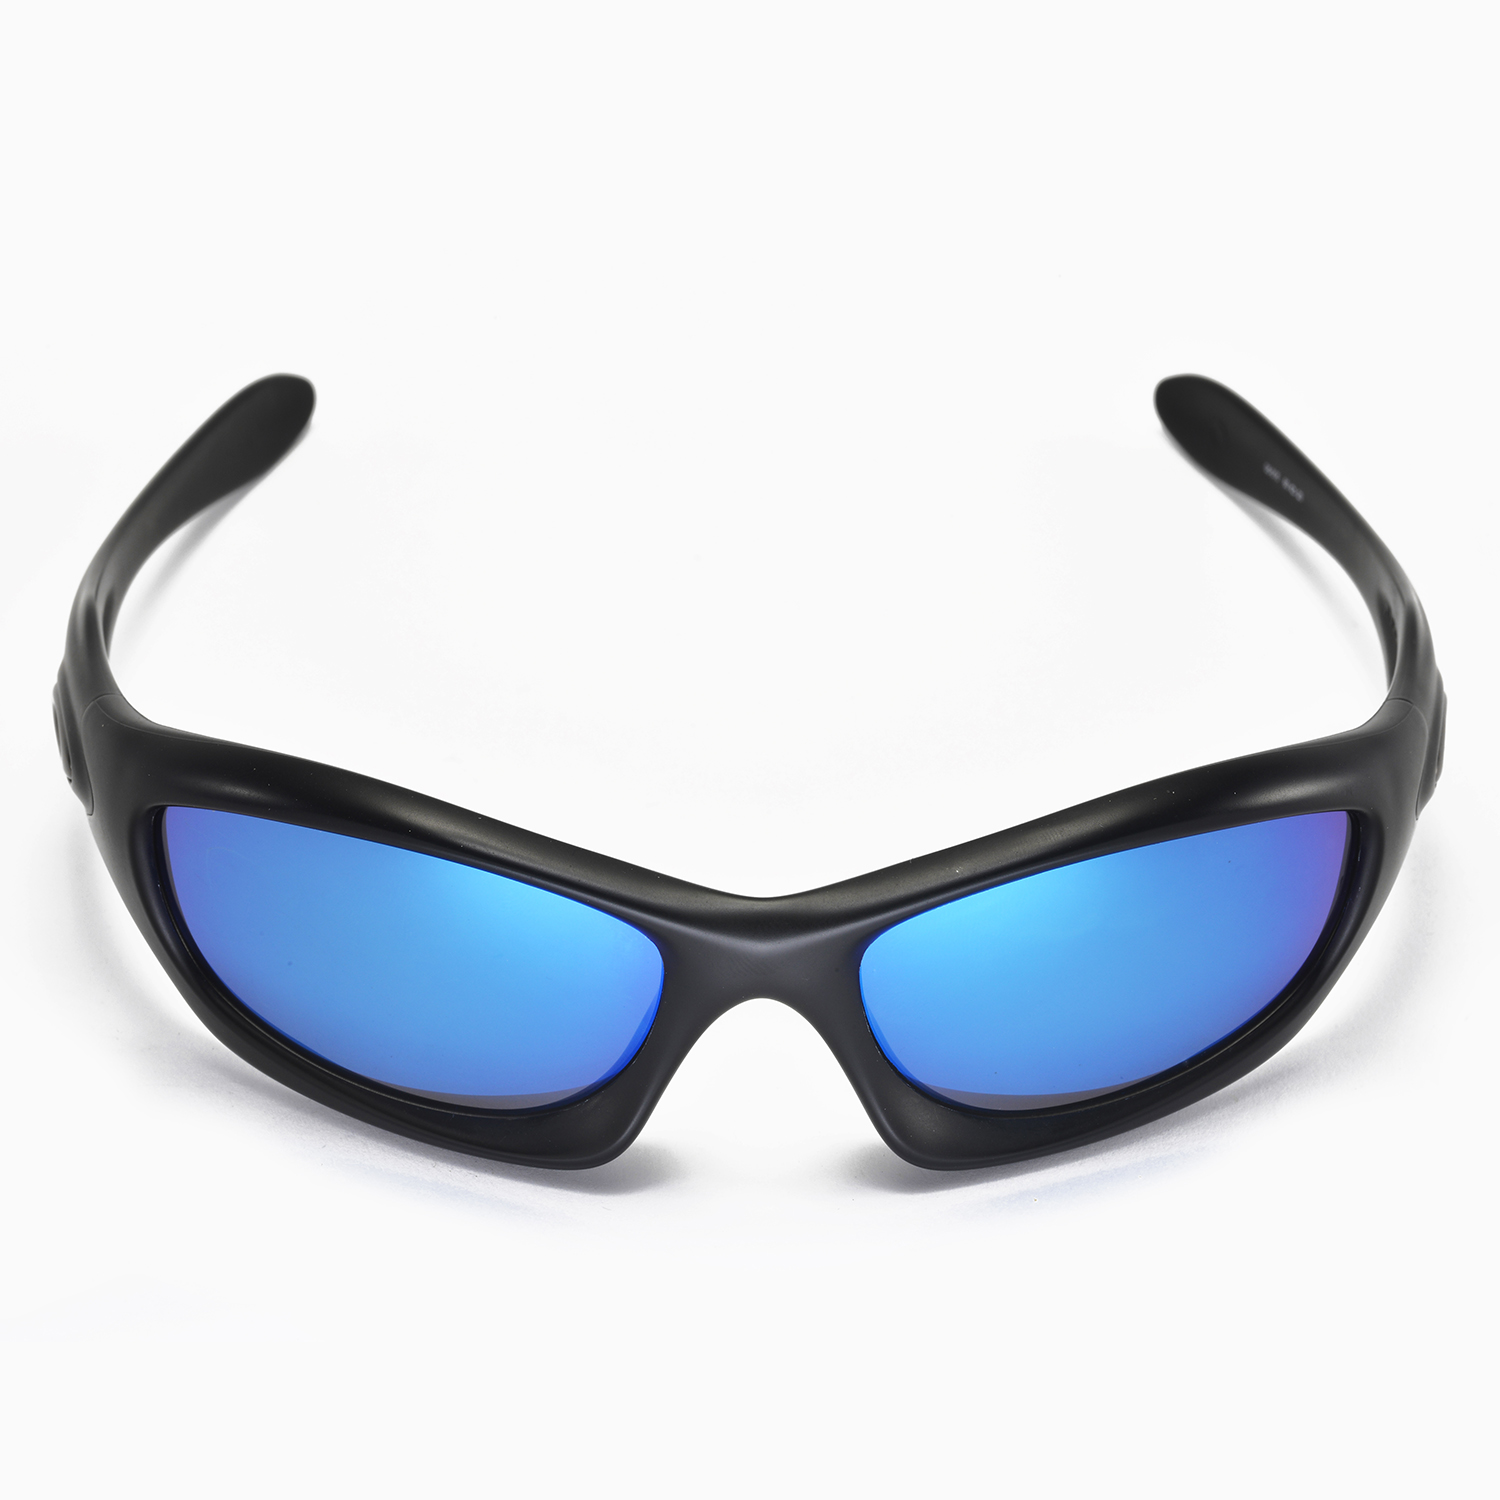 9fc4b63c8c New Walleva Ice Blue Replacement Lenses For Oakley Monster Dog ...